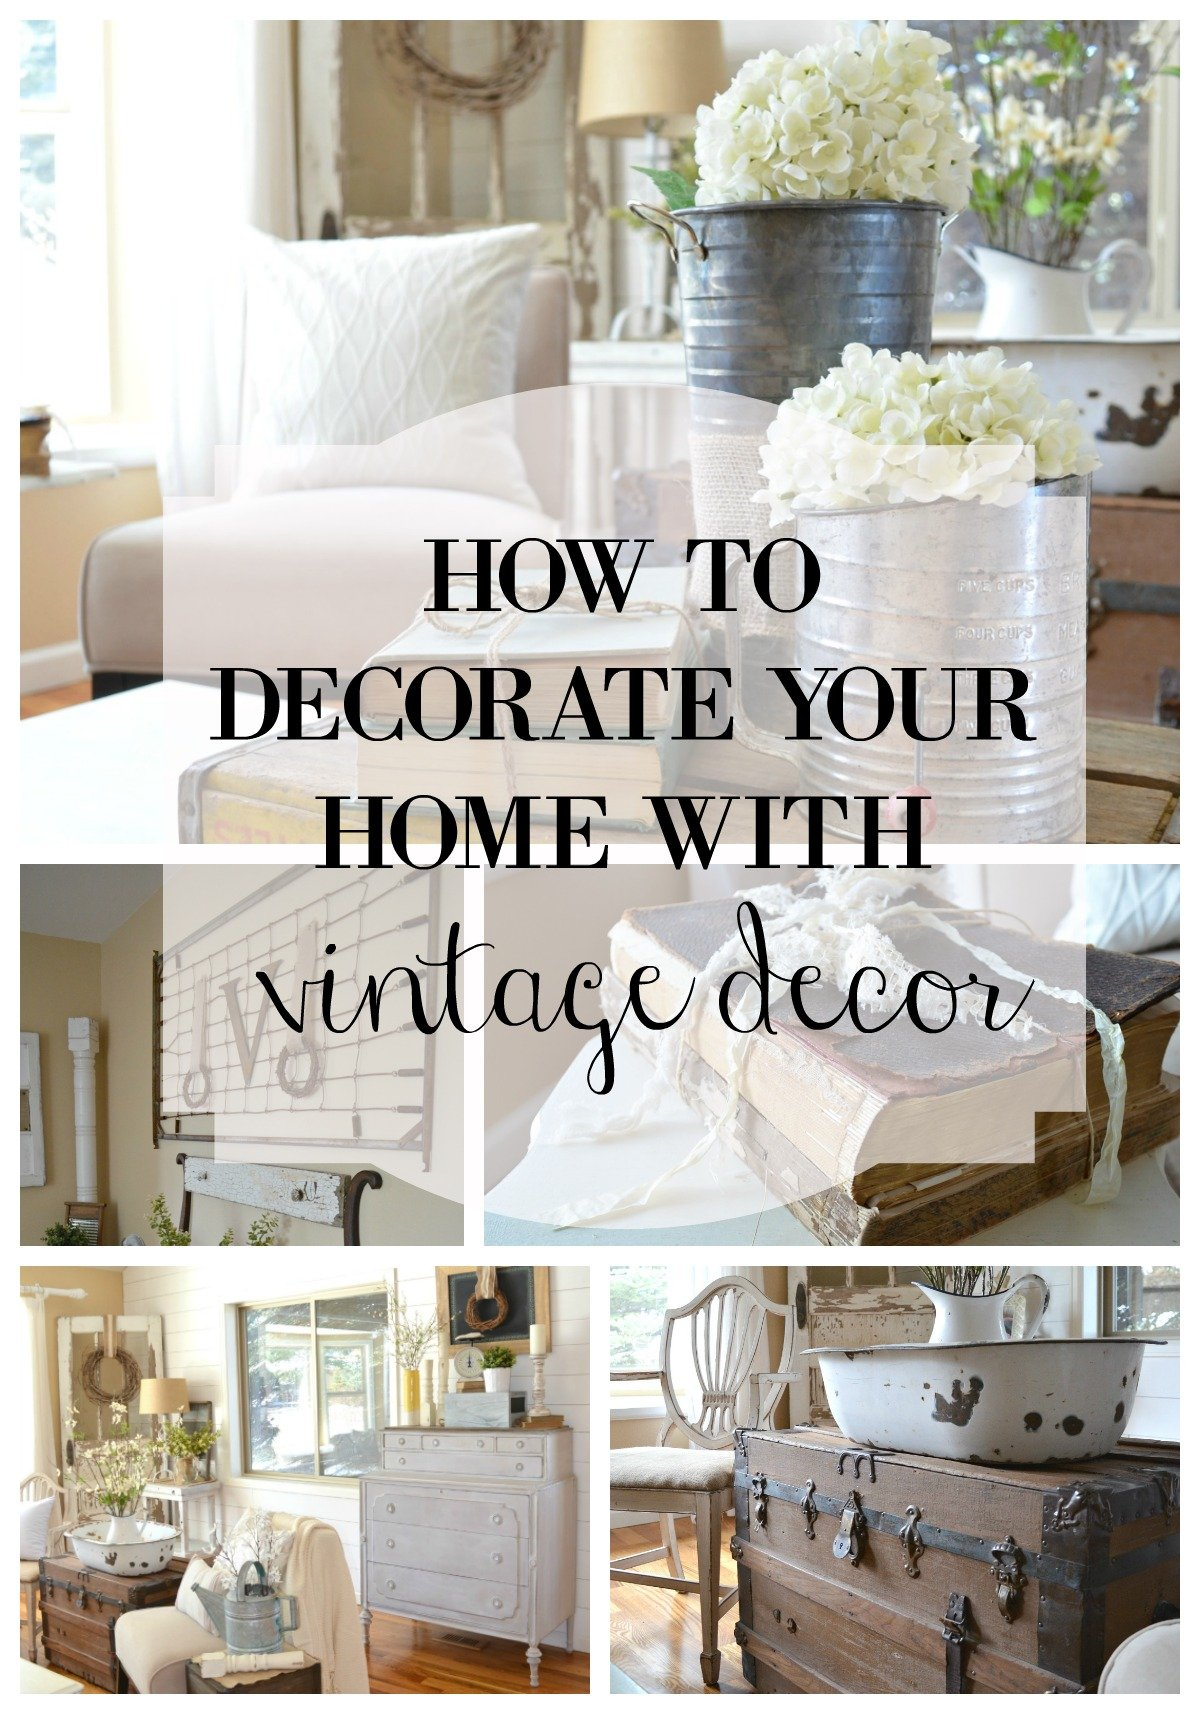 How to decorate your home with vintage decor